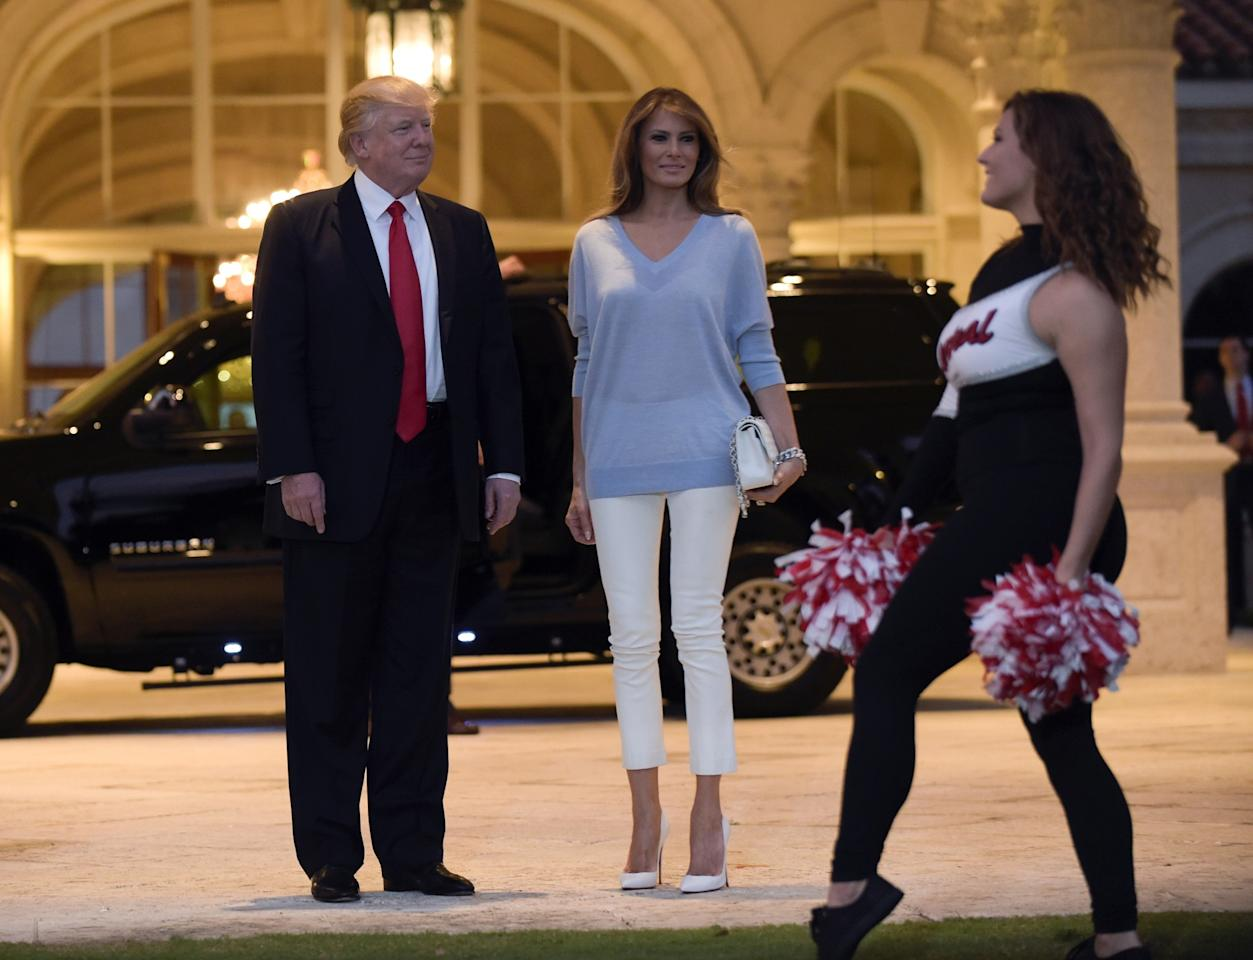 """<p>To watch the Super Bowl at a viewing party hosted by her husband, a Patriots fan because of his friendship with Tom Brady and Robert Kraft, Melania Trump dressed in the Palm Beach version of patriotic colors: cropped white pants and light blue sweater (and red blush to complete the look). The Double V-neck felted lambswool sweater in light blue comes from Victoria Beckham and retails for $1,100. She accessorized with Chanel's classic quilted flap bag in white ($4,495) and matching """"So Kate"""" Christian Louboutin pumps ($695). (Photo: AP) </p>"""